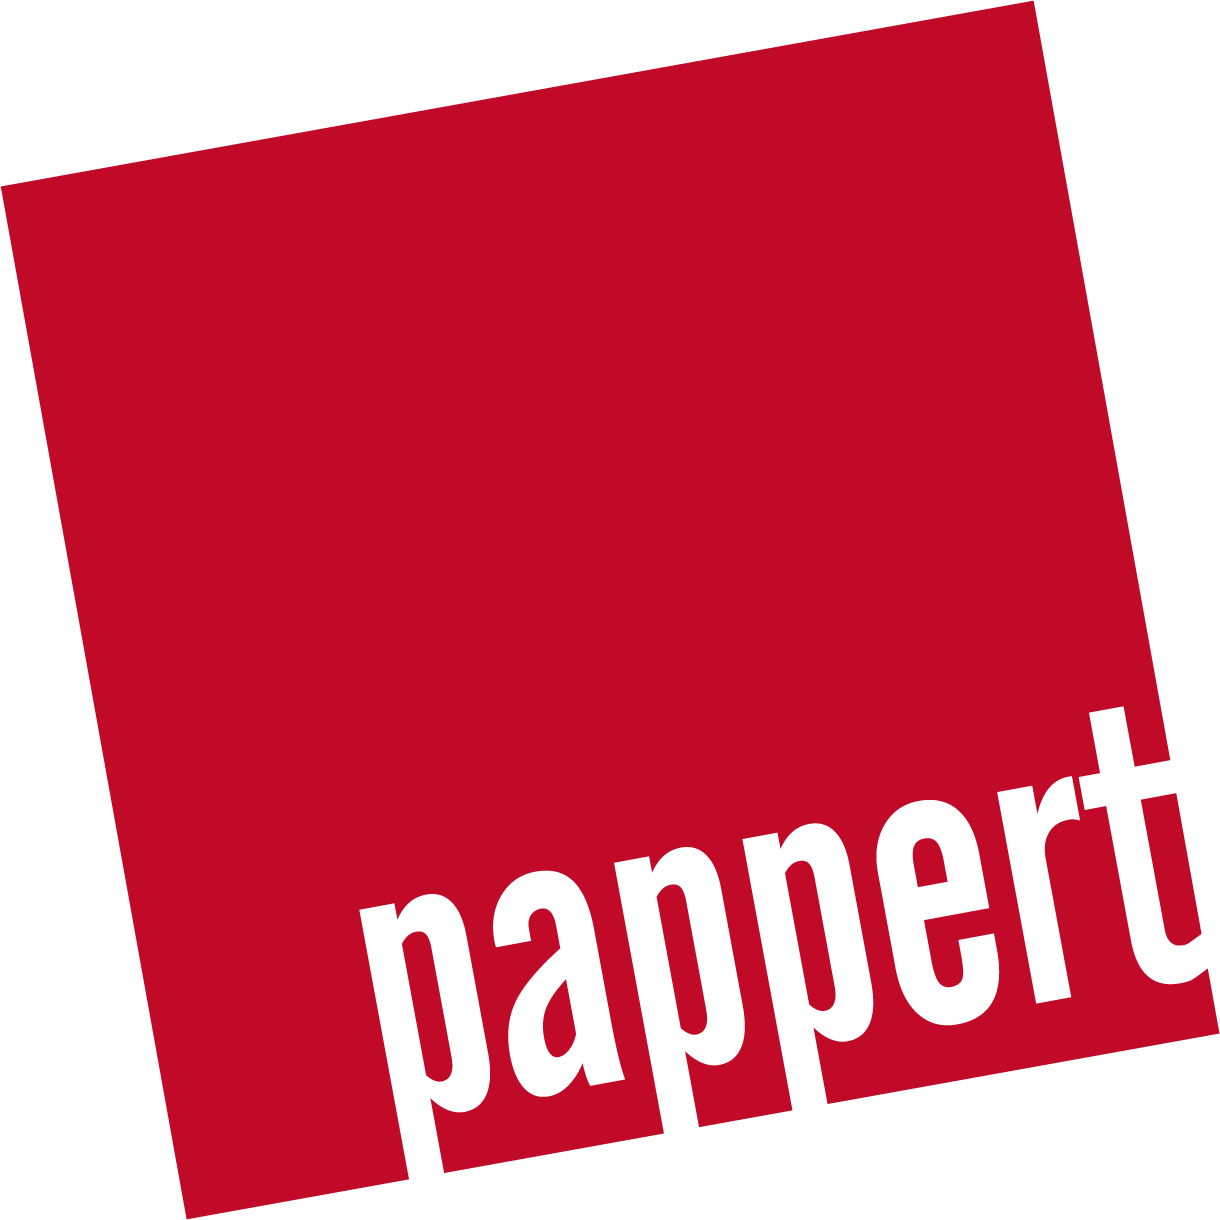 papperts